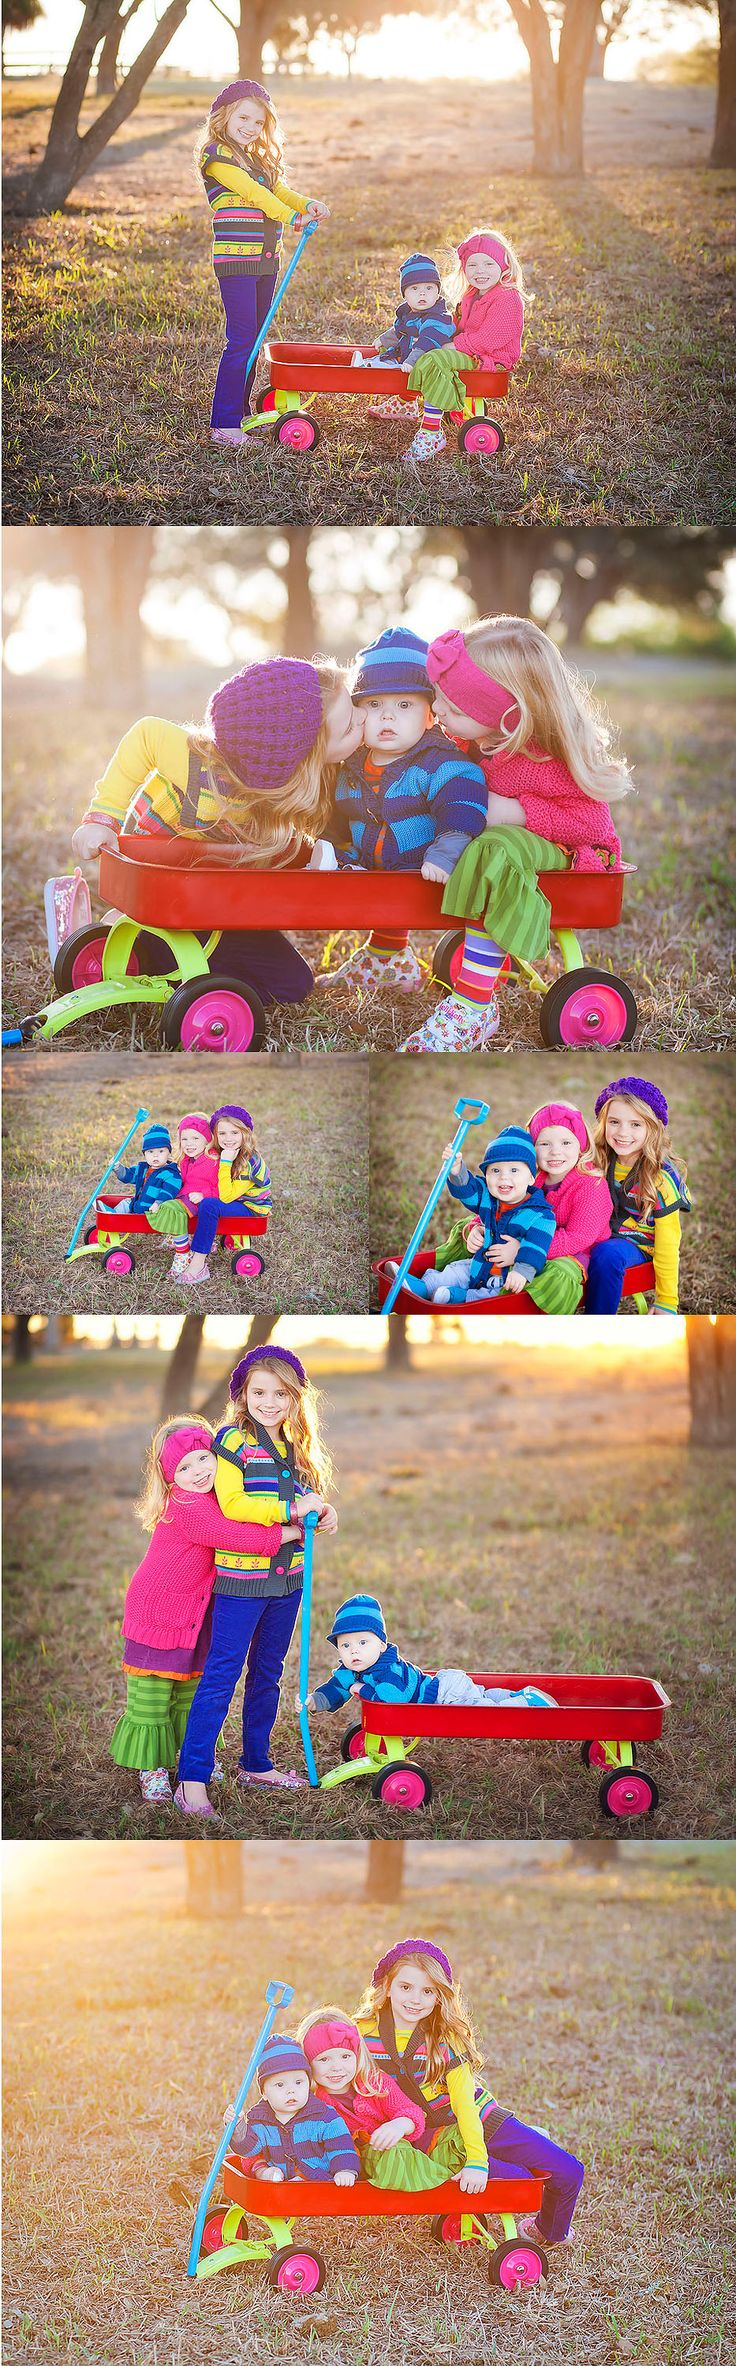 """fun colors for kid photos"" @Liz Mester Mester Behm these shots remind me of some of yours!! precious"